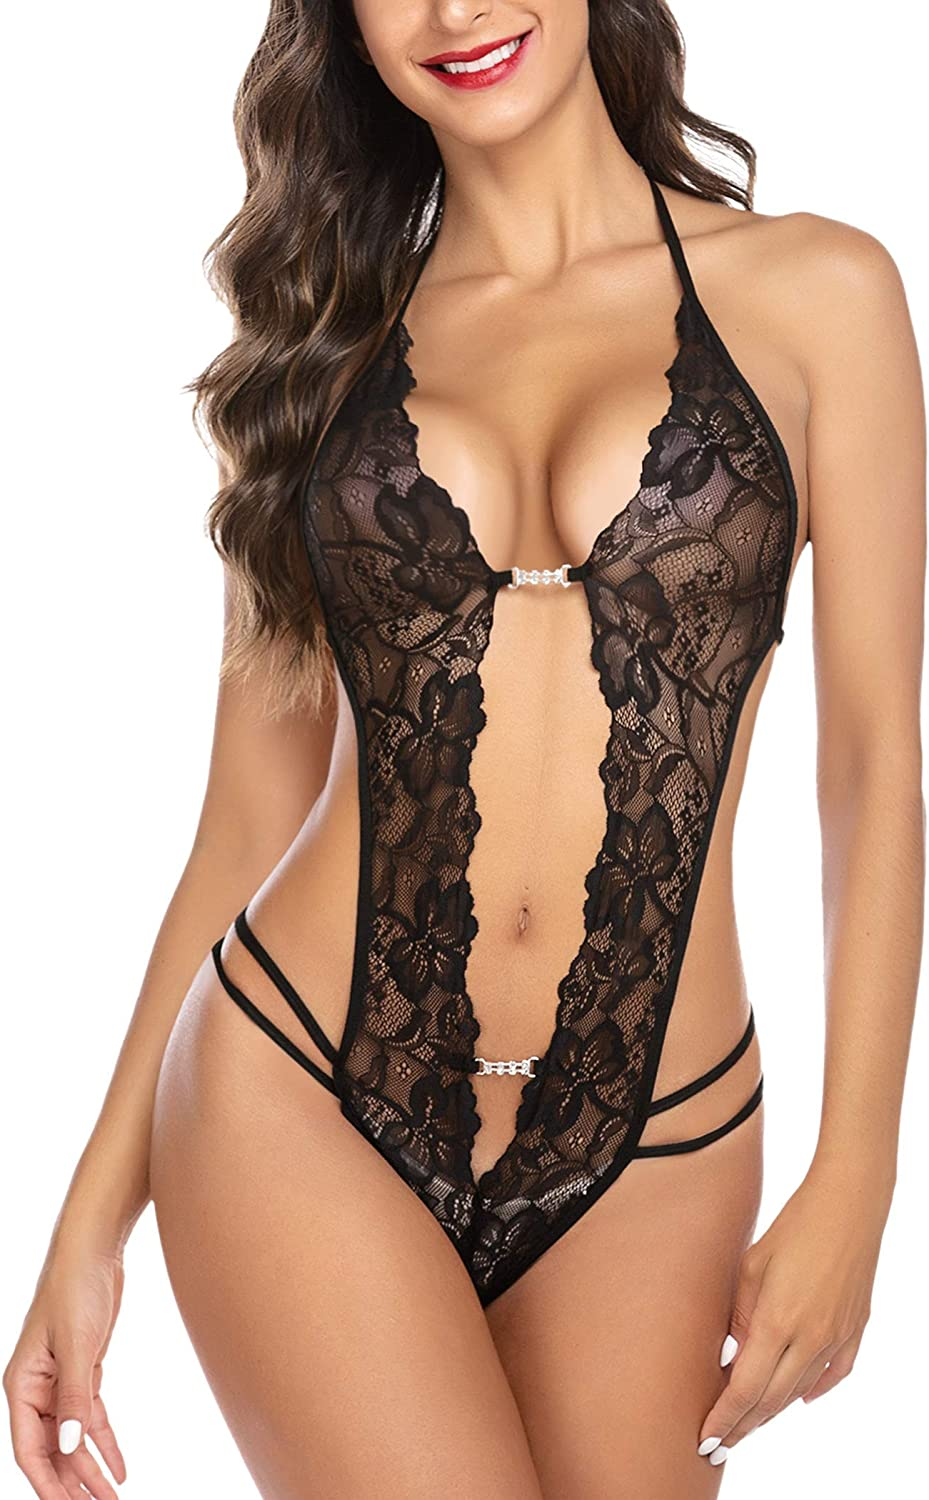 Avidlove Womens One Piece Lingerie Lace Halter Teddy Bodysuit V Neck Babydoll: Clothing